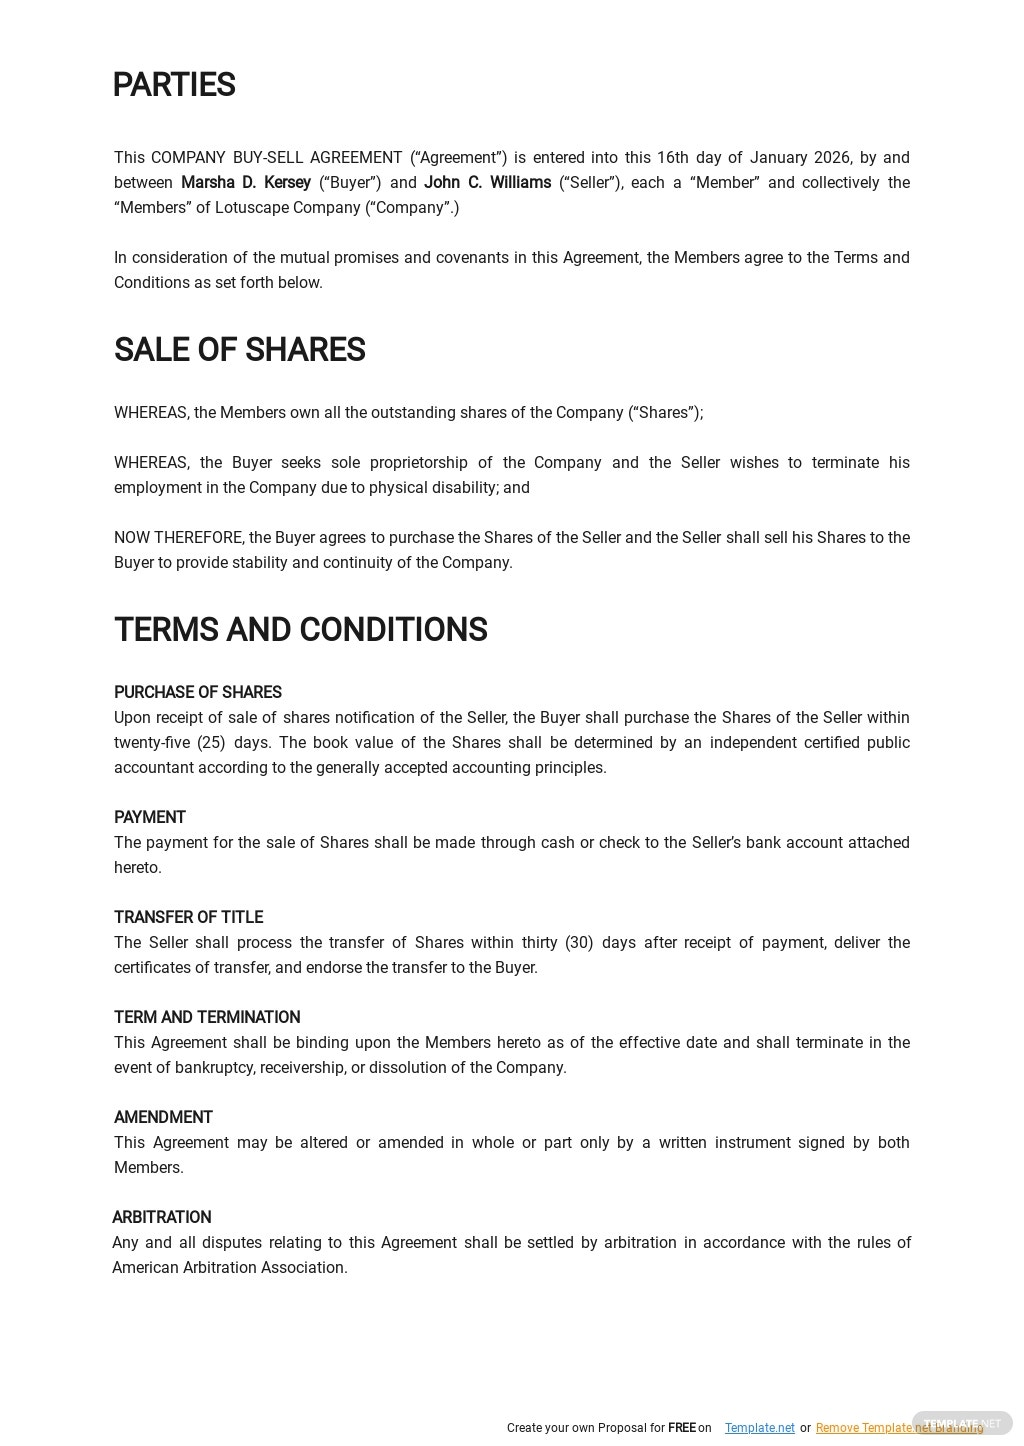 Company Buy Sell Agreement Template 1.jpe